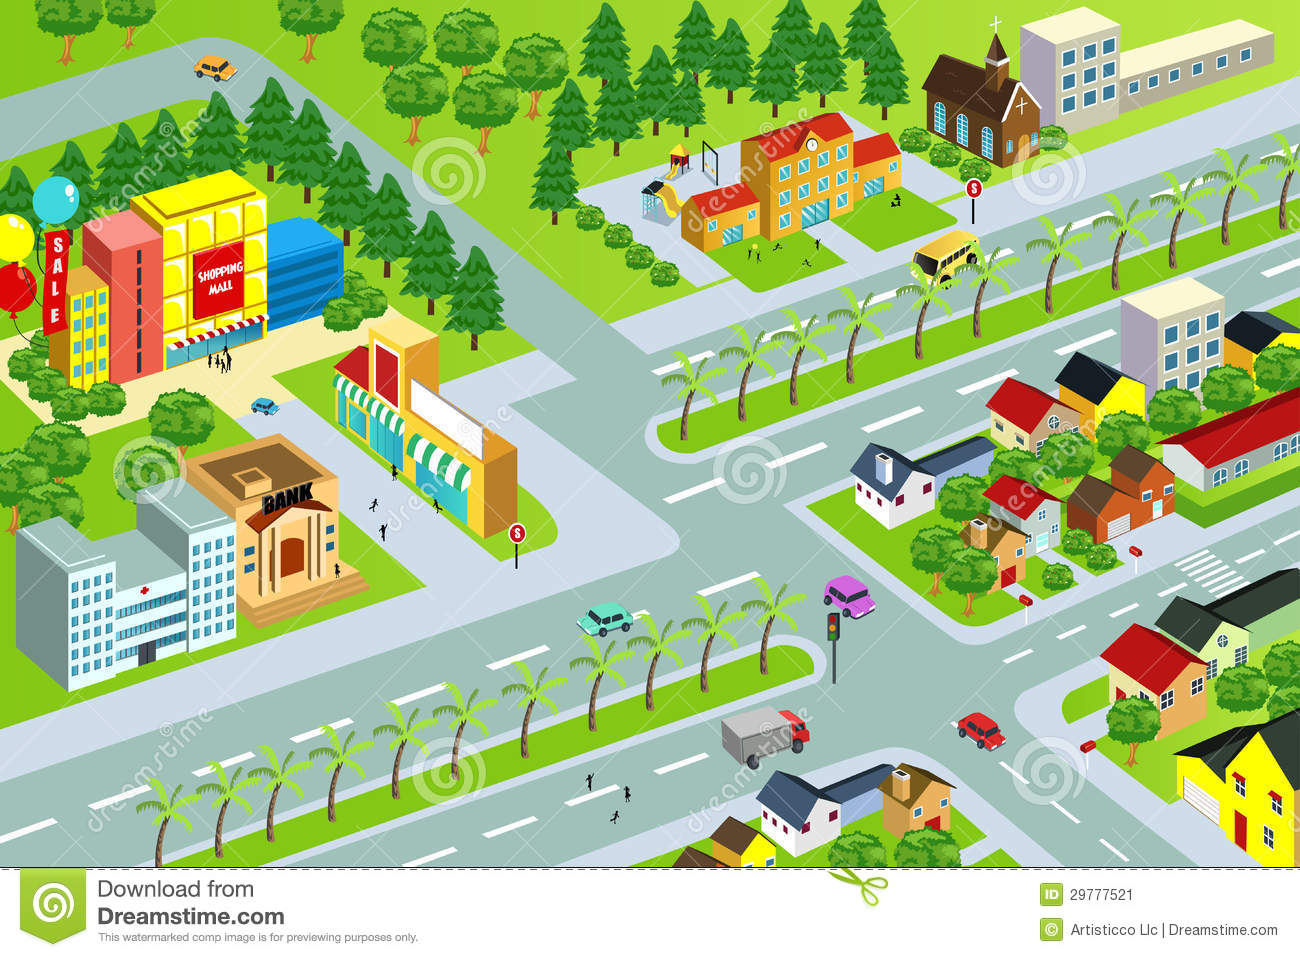 City map stock vector. Illustration of cityscape, housing ...